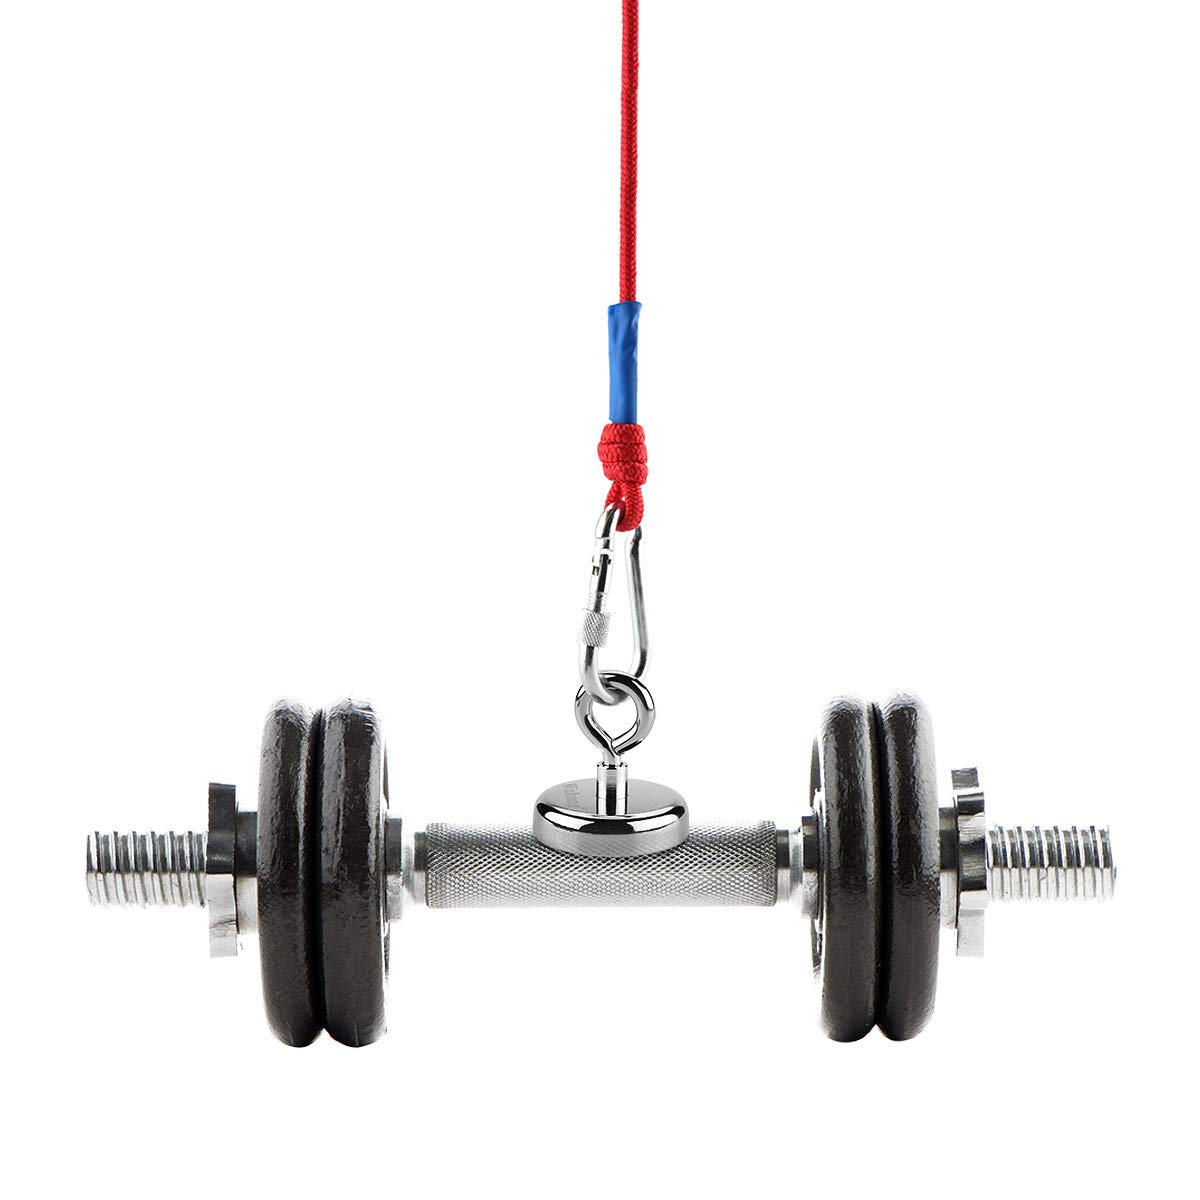 Wukong N52 Holding pull force 330LBS Neodymium Eyebolt Magnet,Diameter x 60mm Thick x 15mm 150KG Fishing clamping magnet and 6mm Braided Rope x 66ft